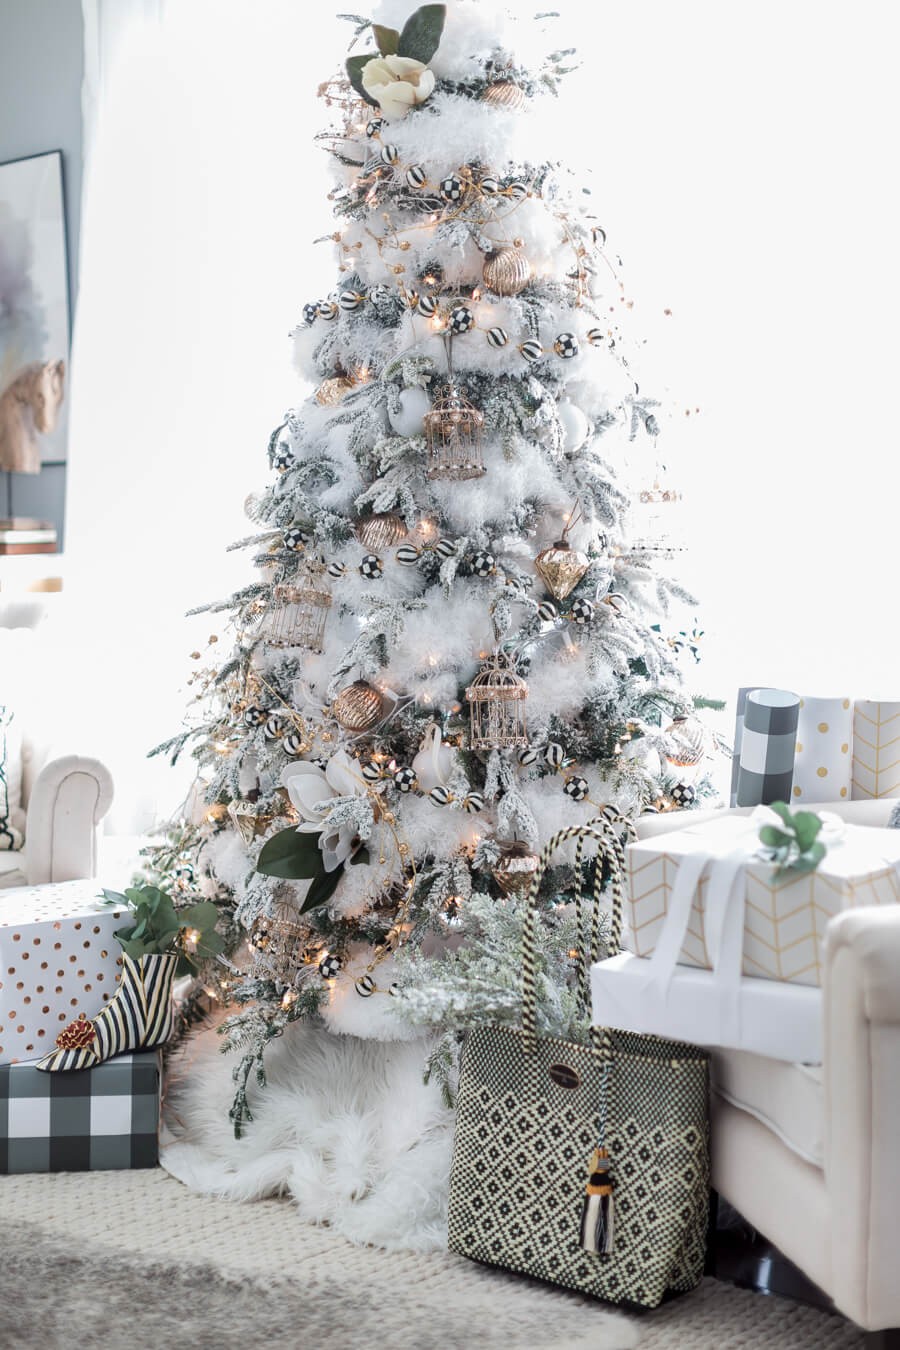 25+ Inexpensive Christmas Tree Decorating Ideas - FarmFoodFamily